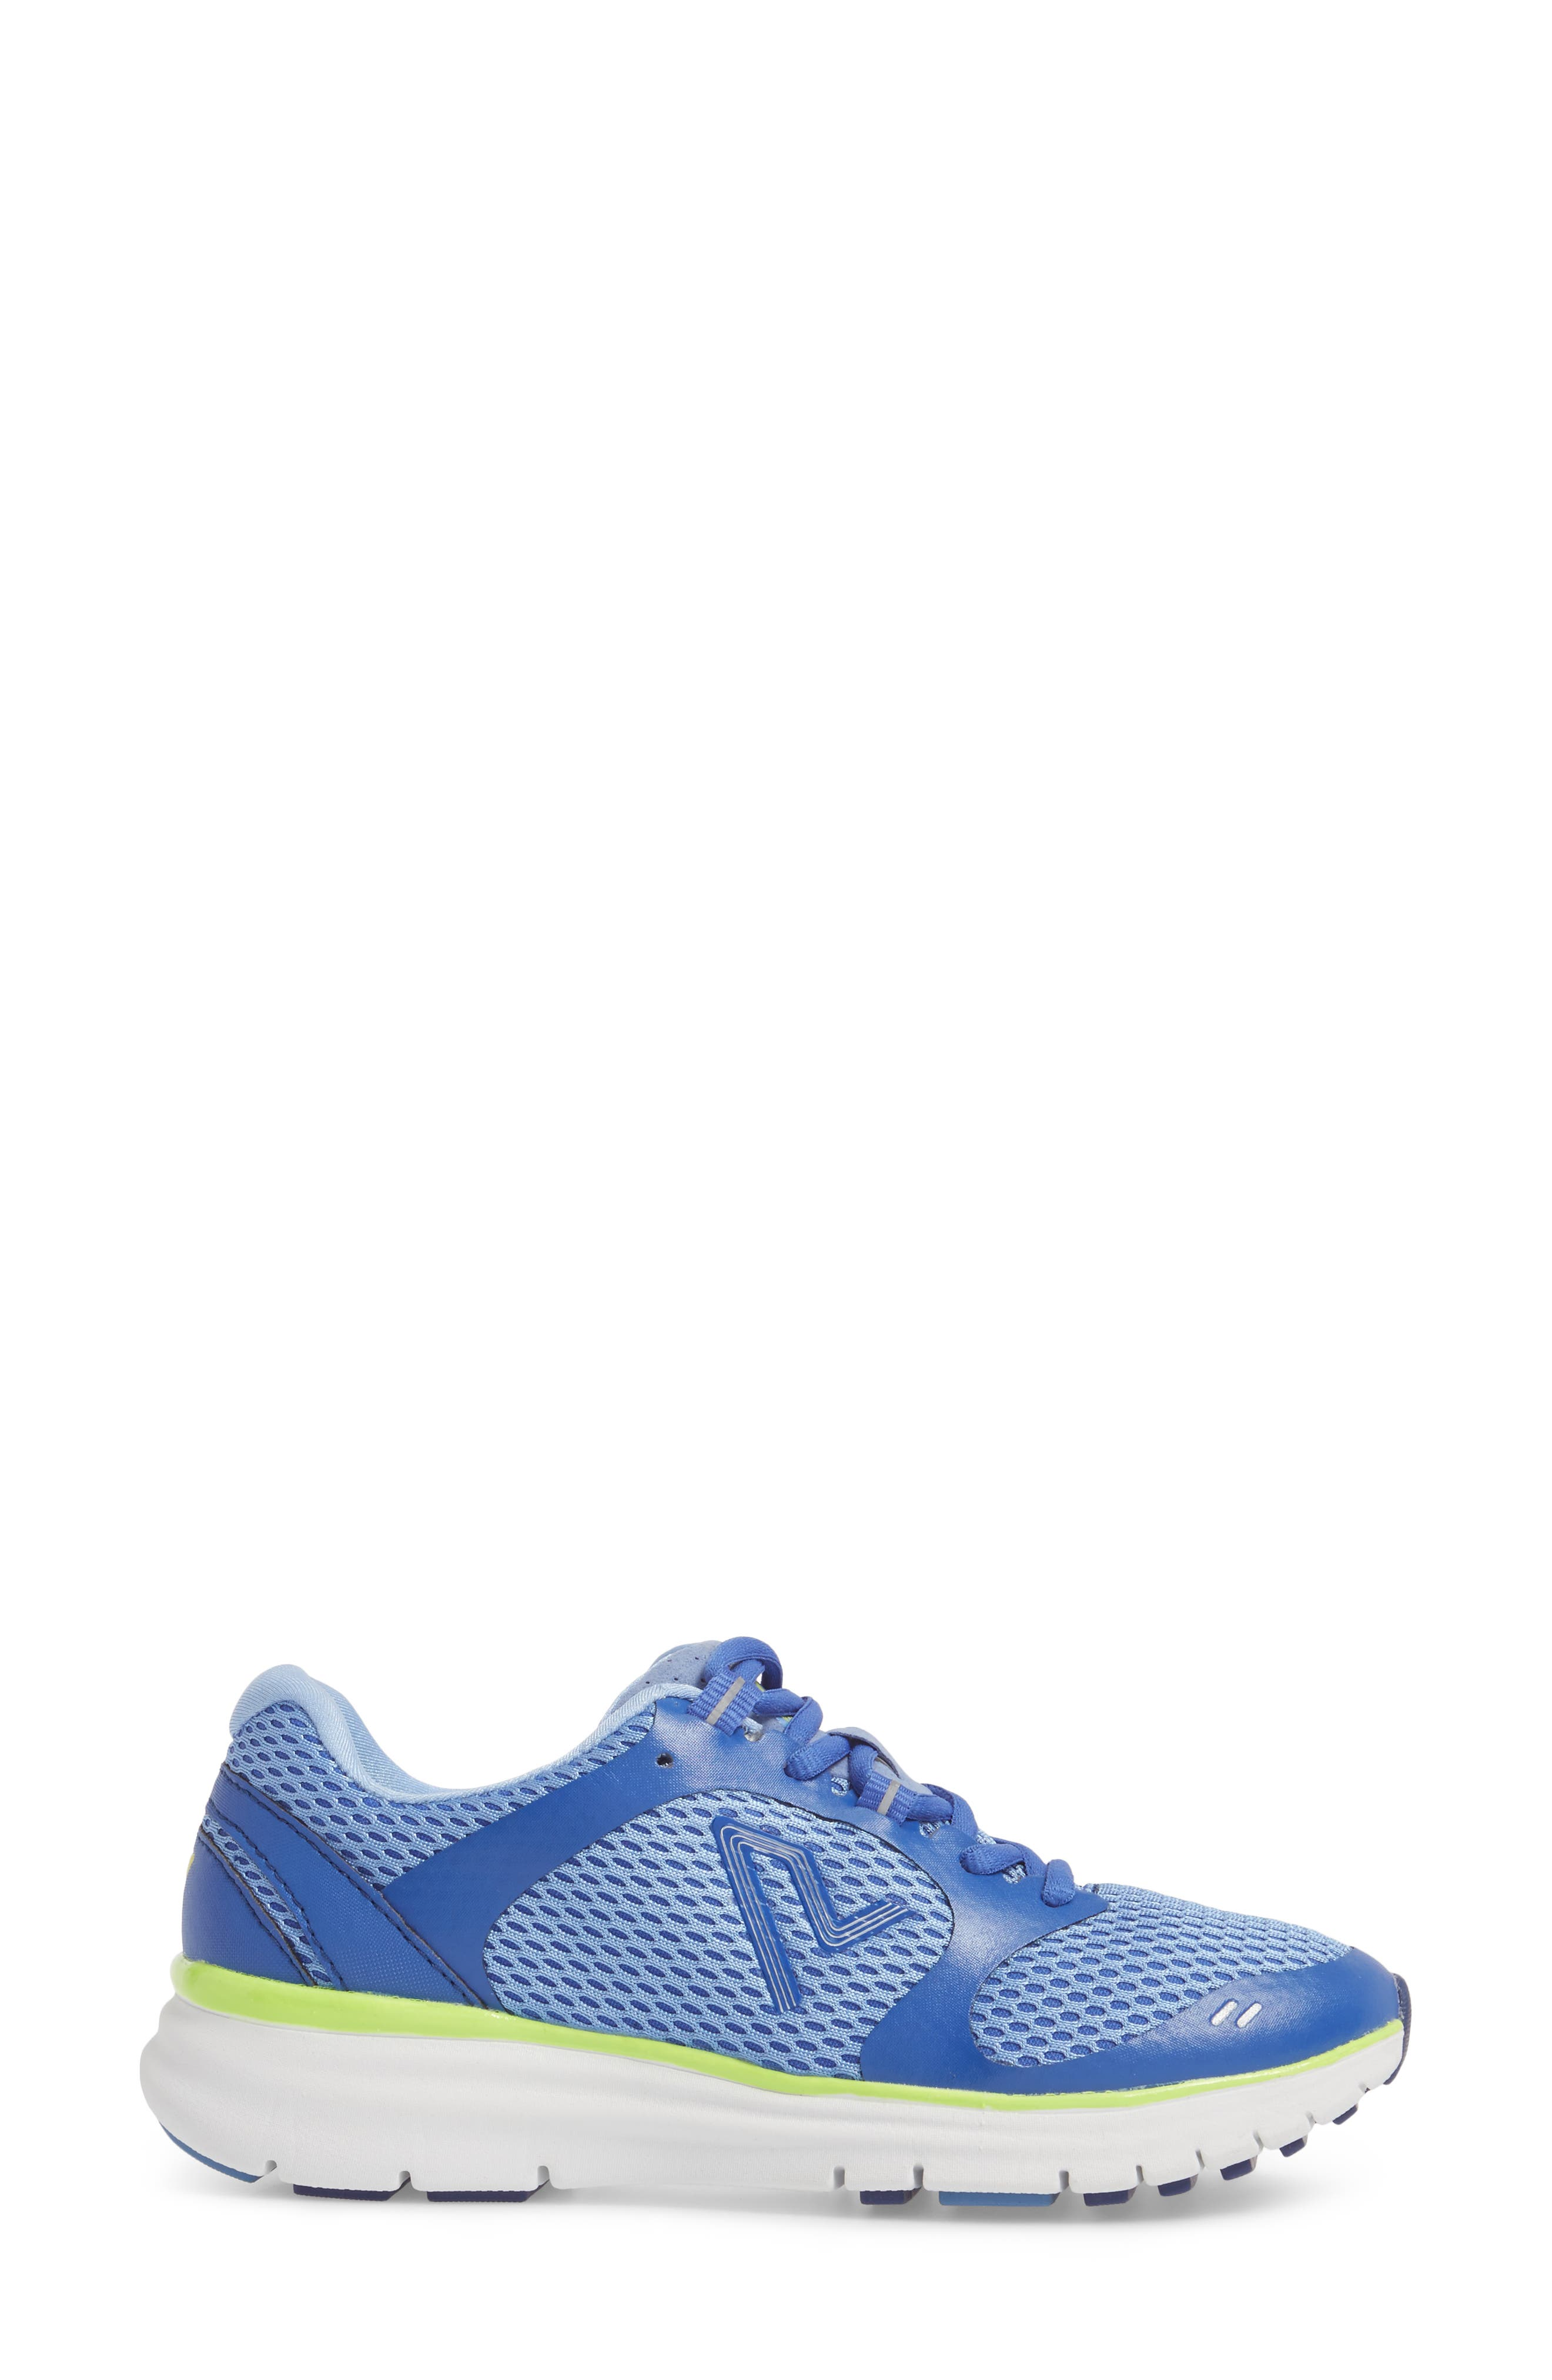 Elation Sneaker,                             Alternate thumbnail 3, color,                             BLUE/ YELLOW